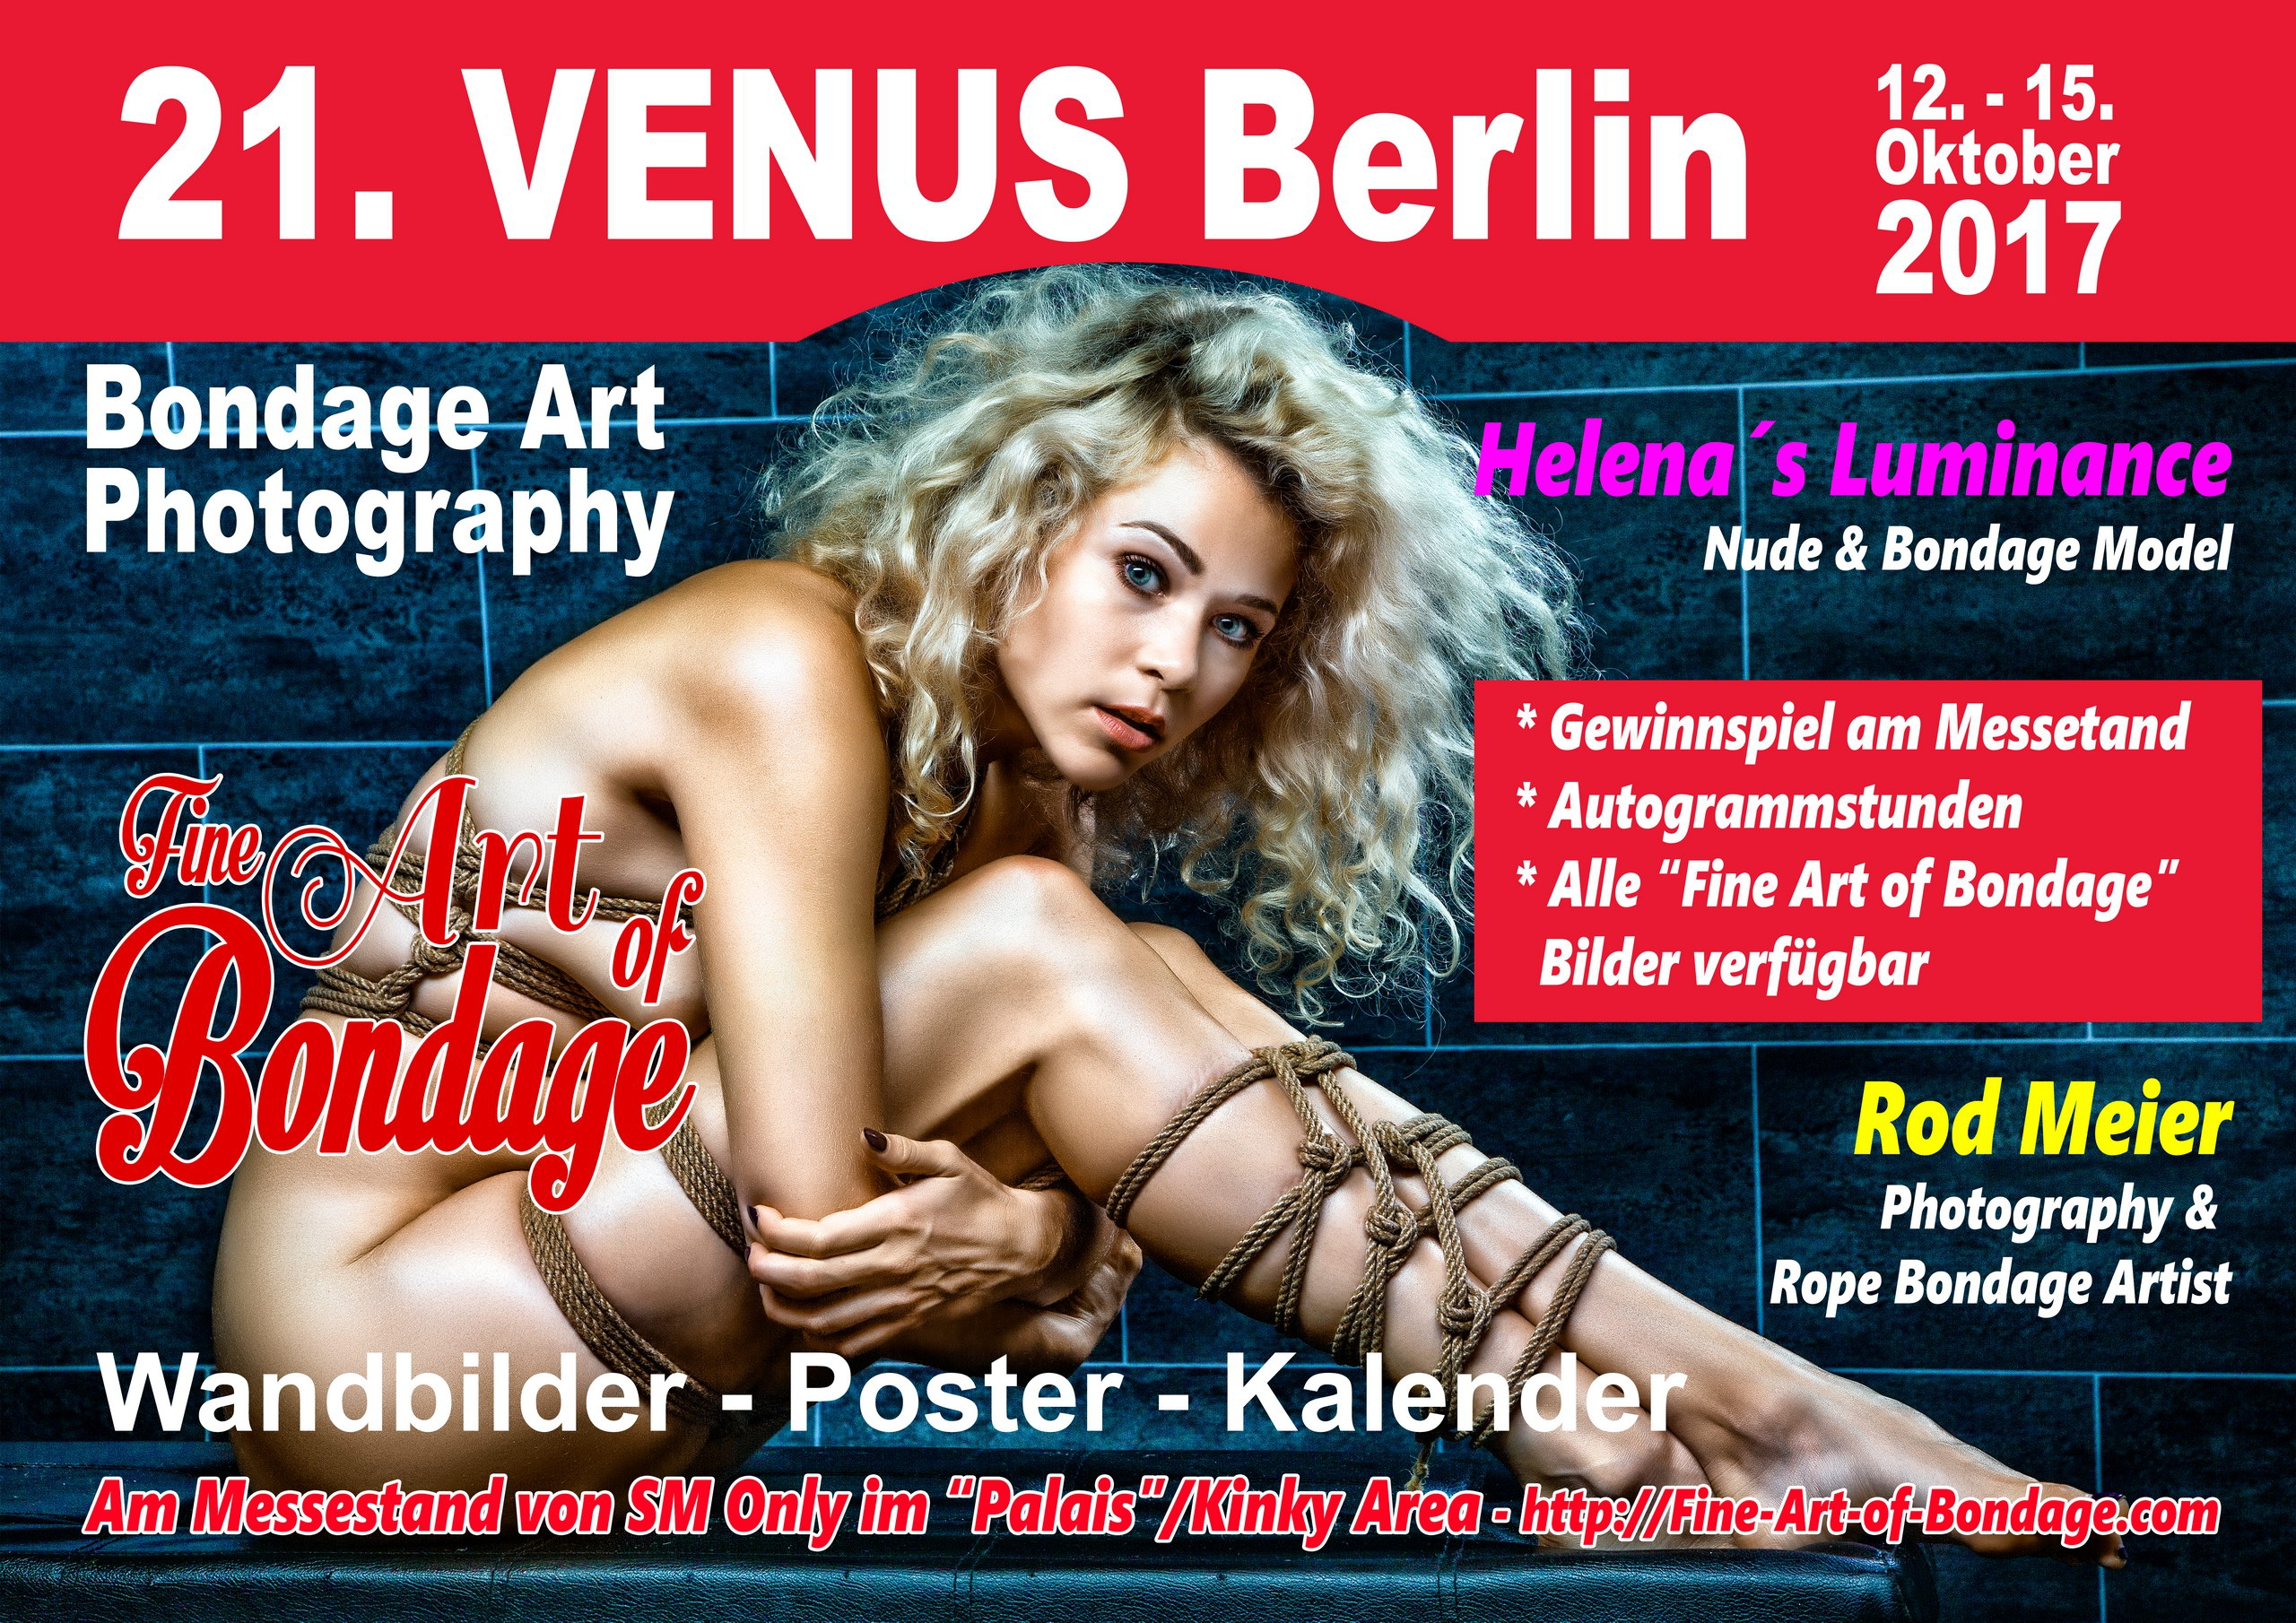 21. Venus Berlin - Fine Art of Bondage auf der Venus Messe Berlin